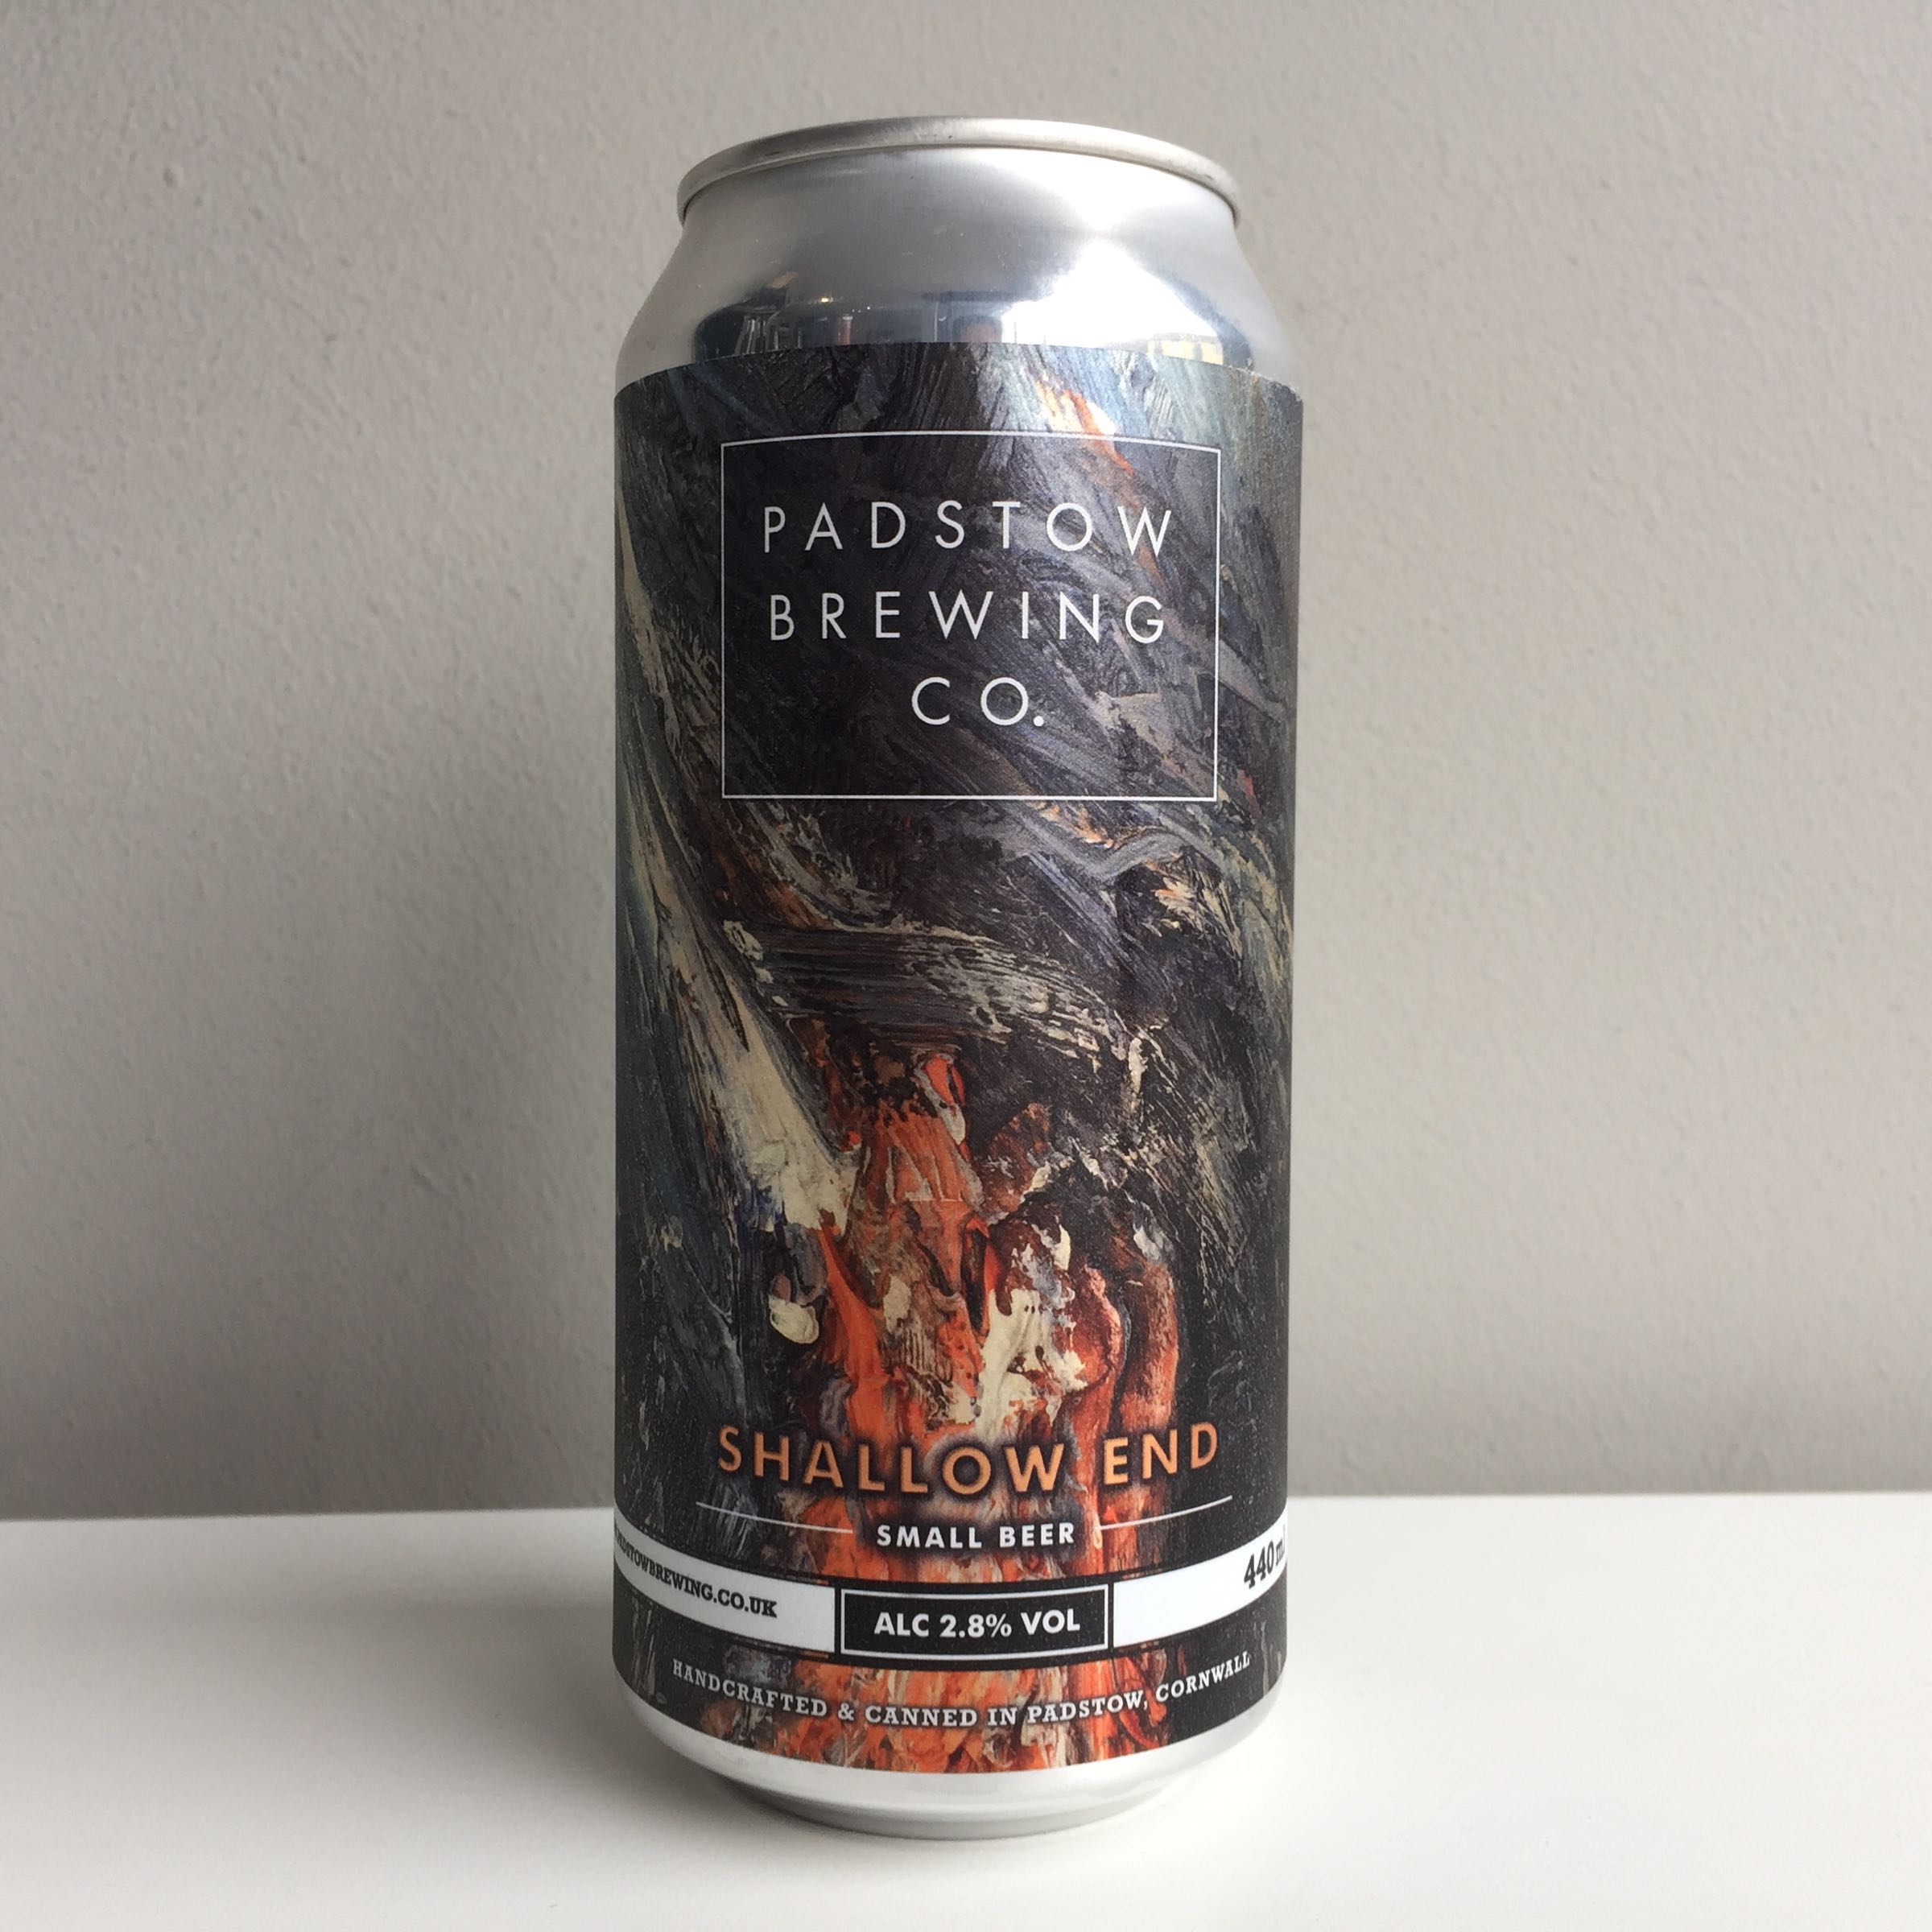 Padstow Brewing Co. 'Shallow End' Small Beer 440ml 2.8% ABV